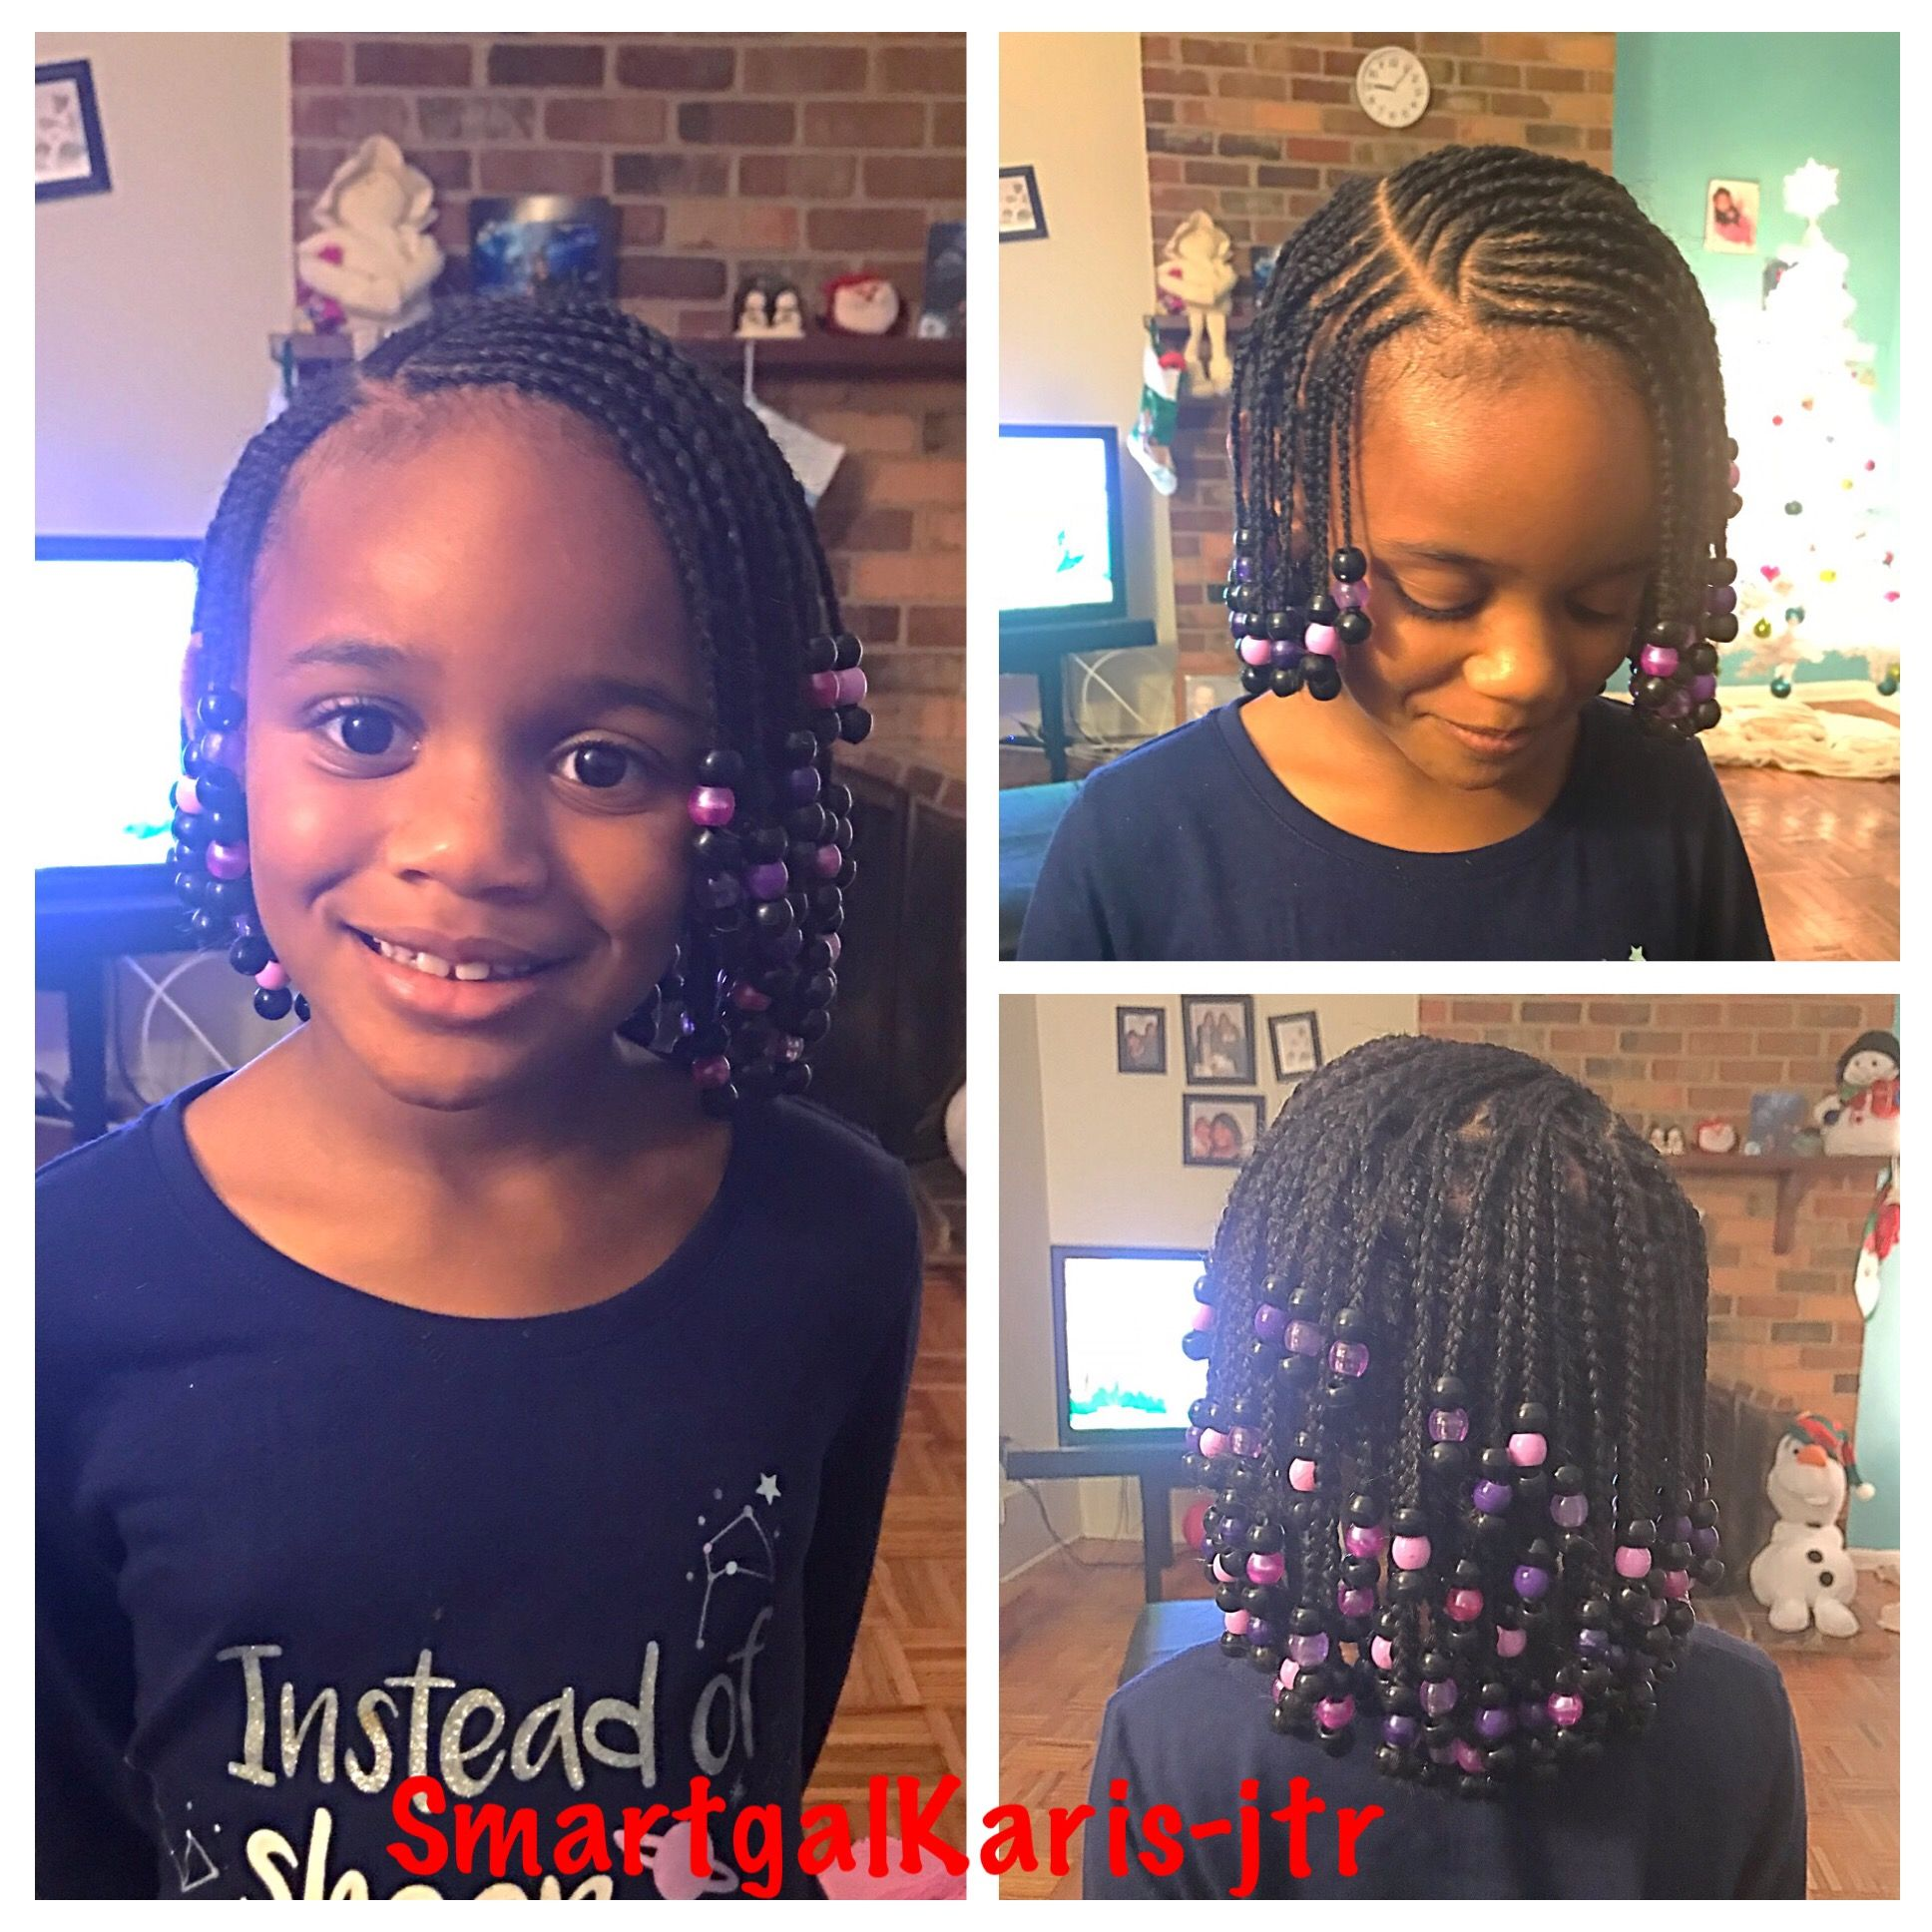 Pin by kimberly bock on hair ideas pinterest kid hairstyles